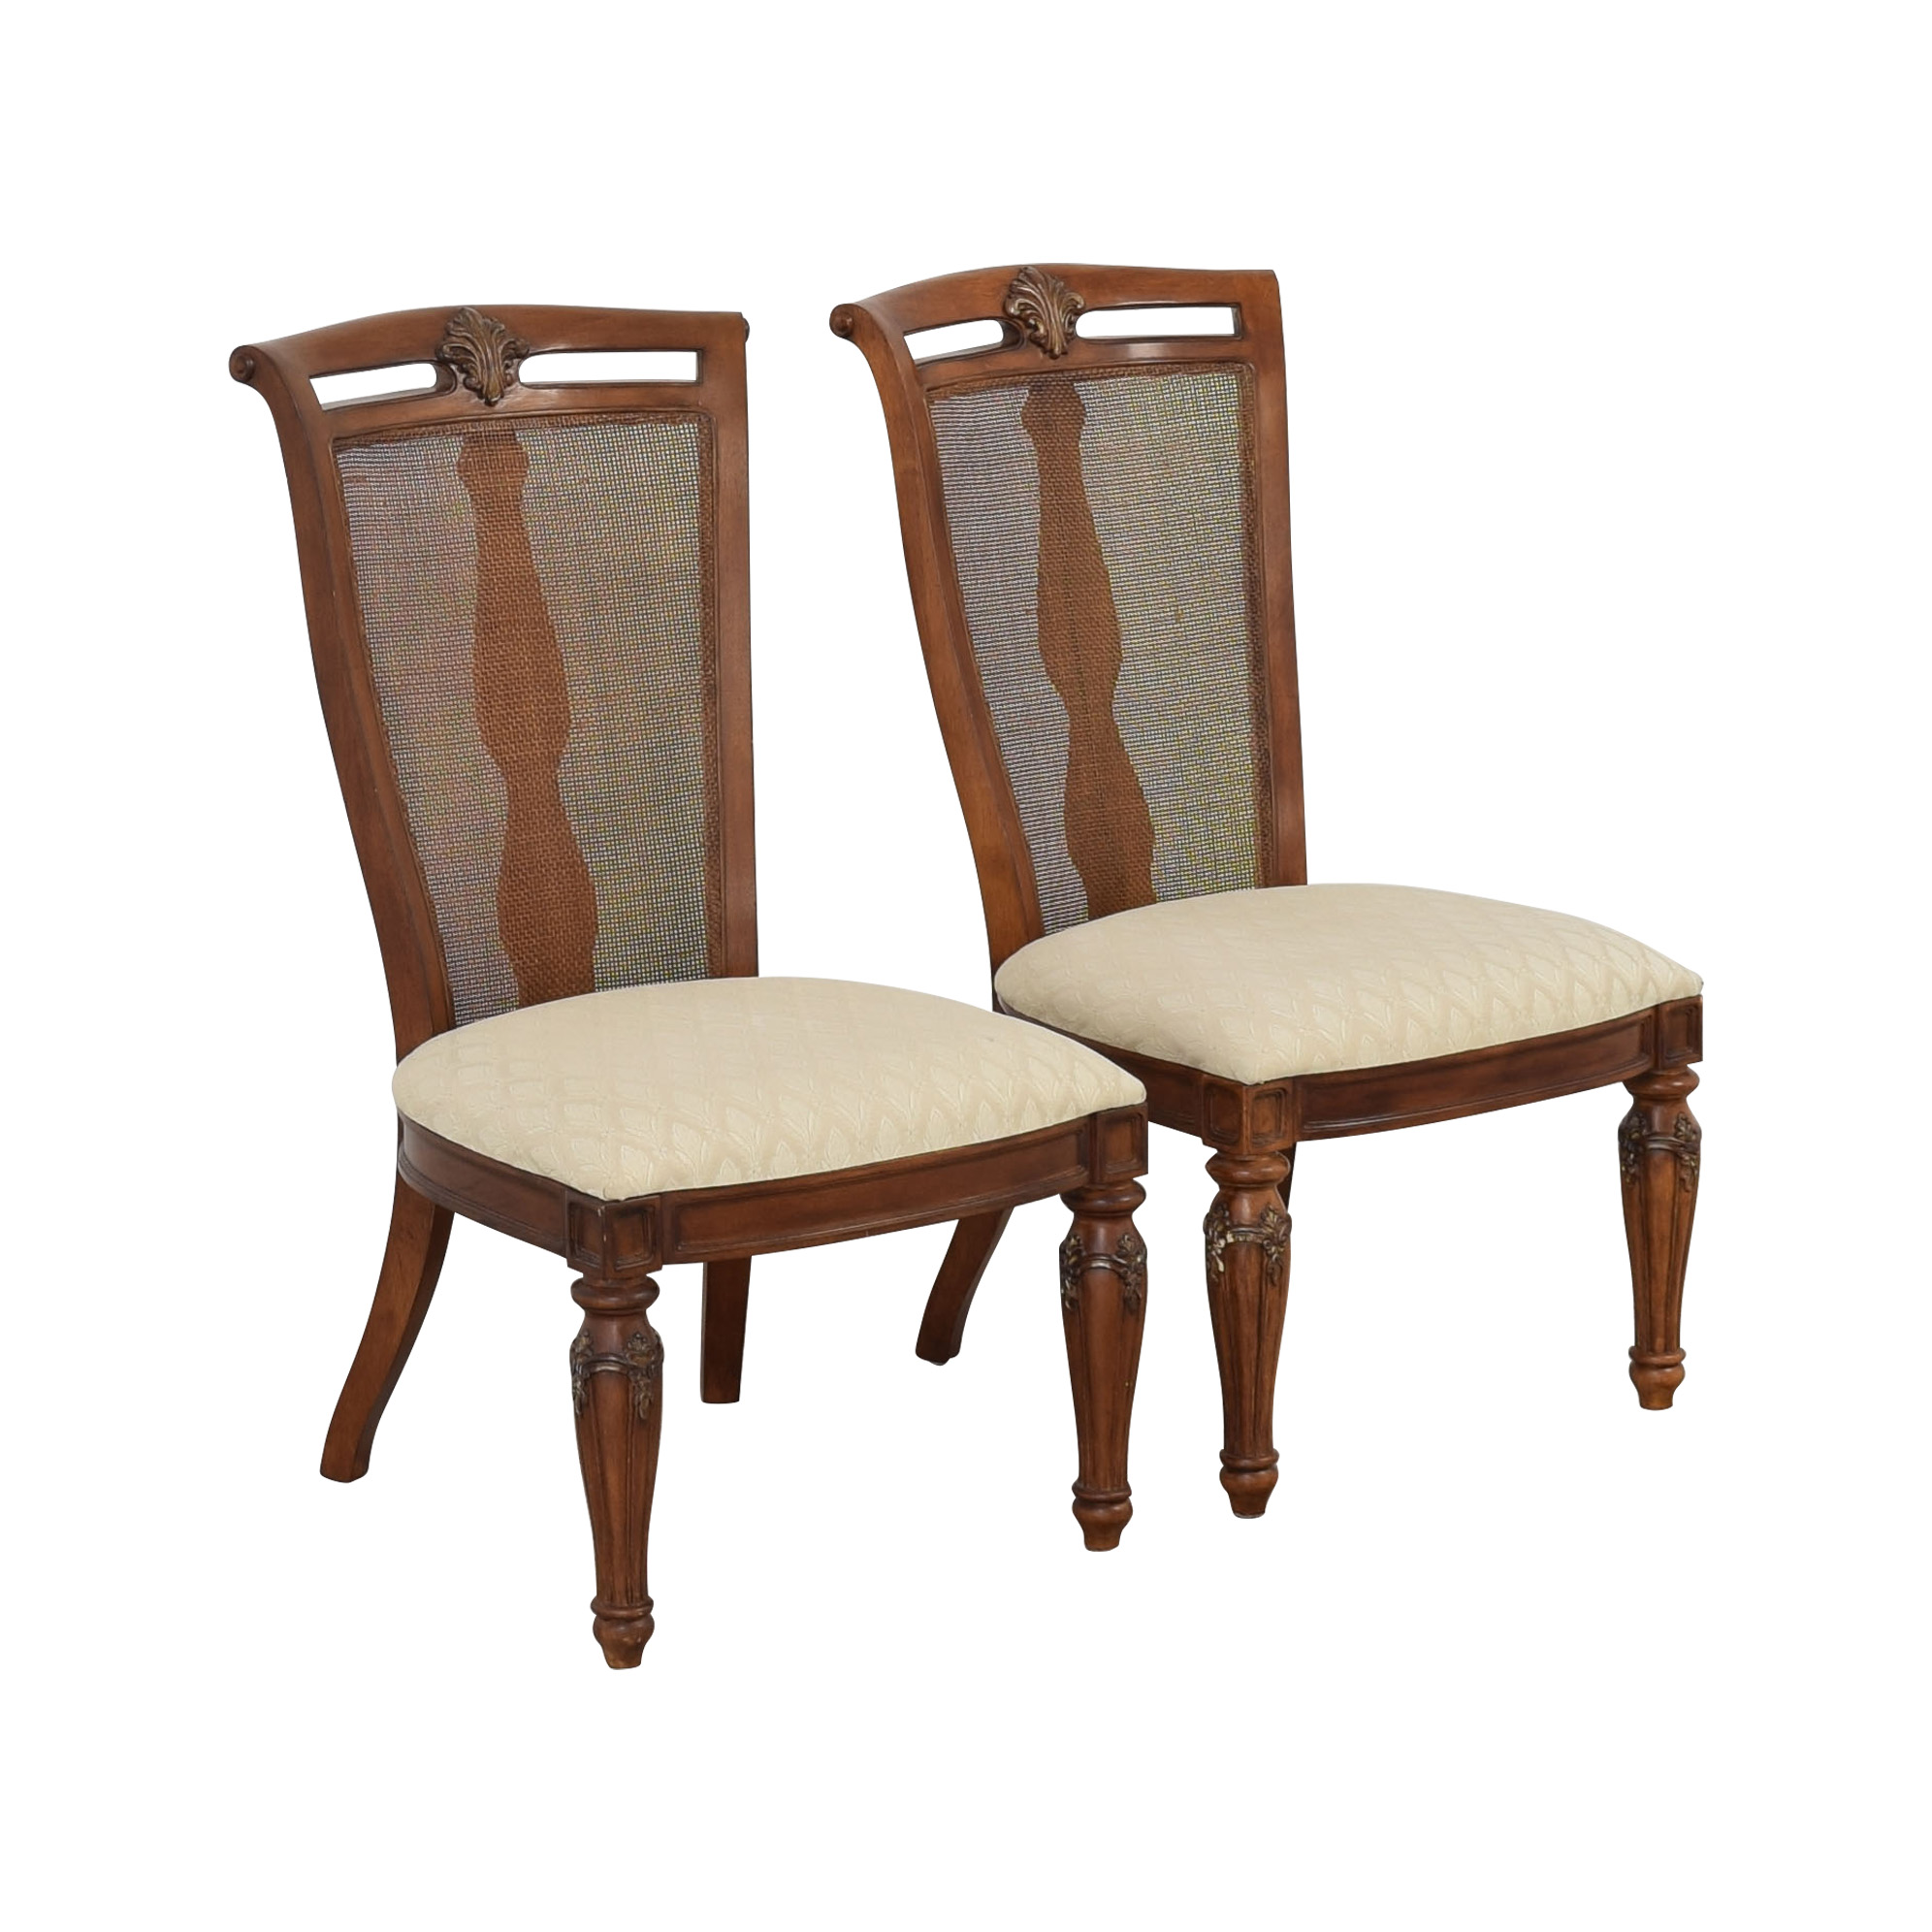 The Lane Company The Lane Company Side Dining Chairs price